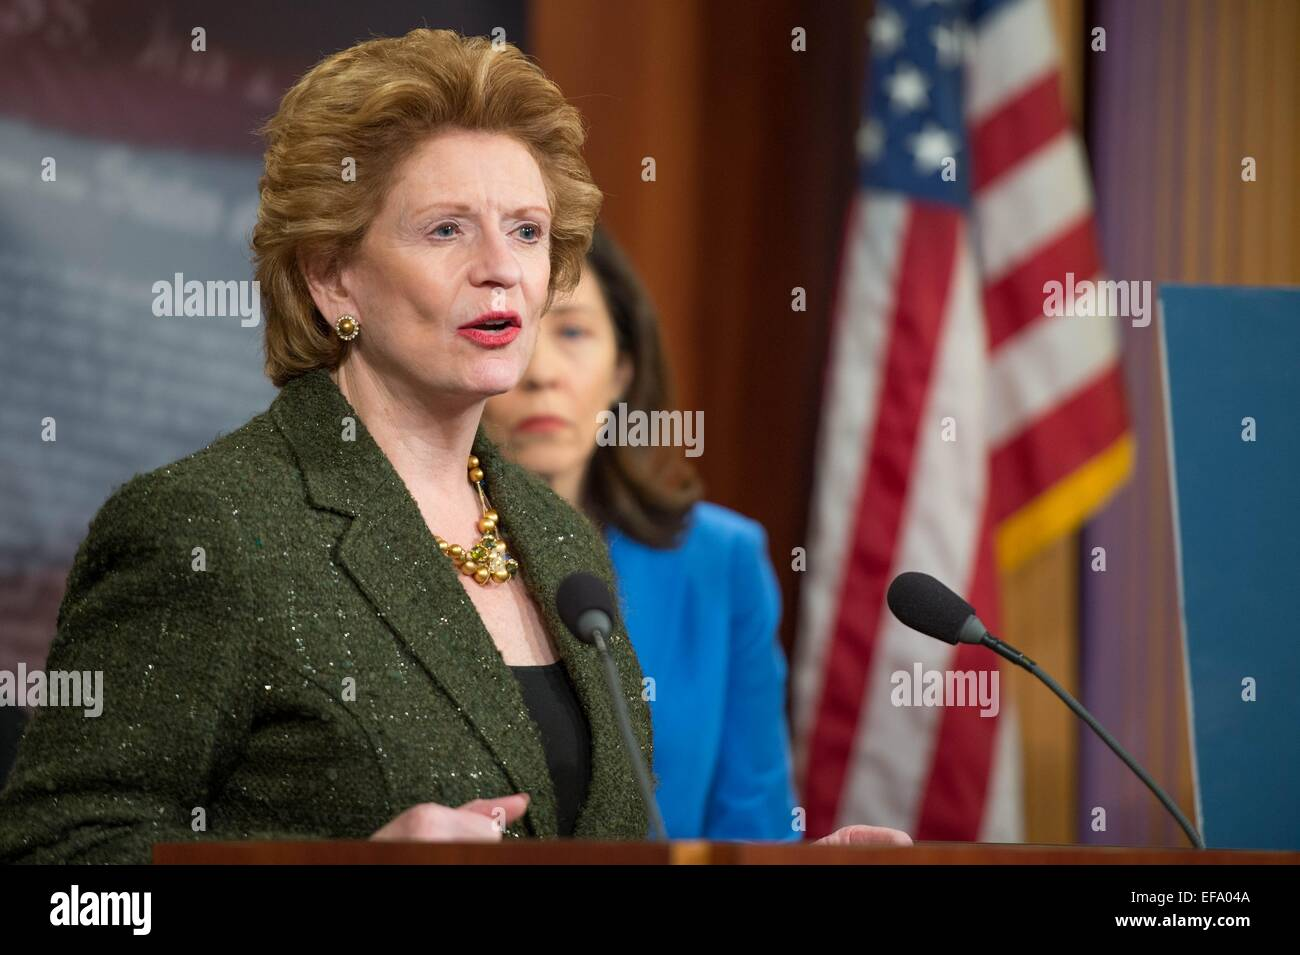 US Senator Debbie Stabenow discuss her opposition to the Keystone Pipeline during a press briefing January 29, 2015 - Stock Image